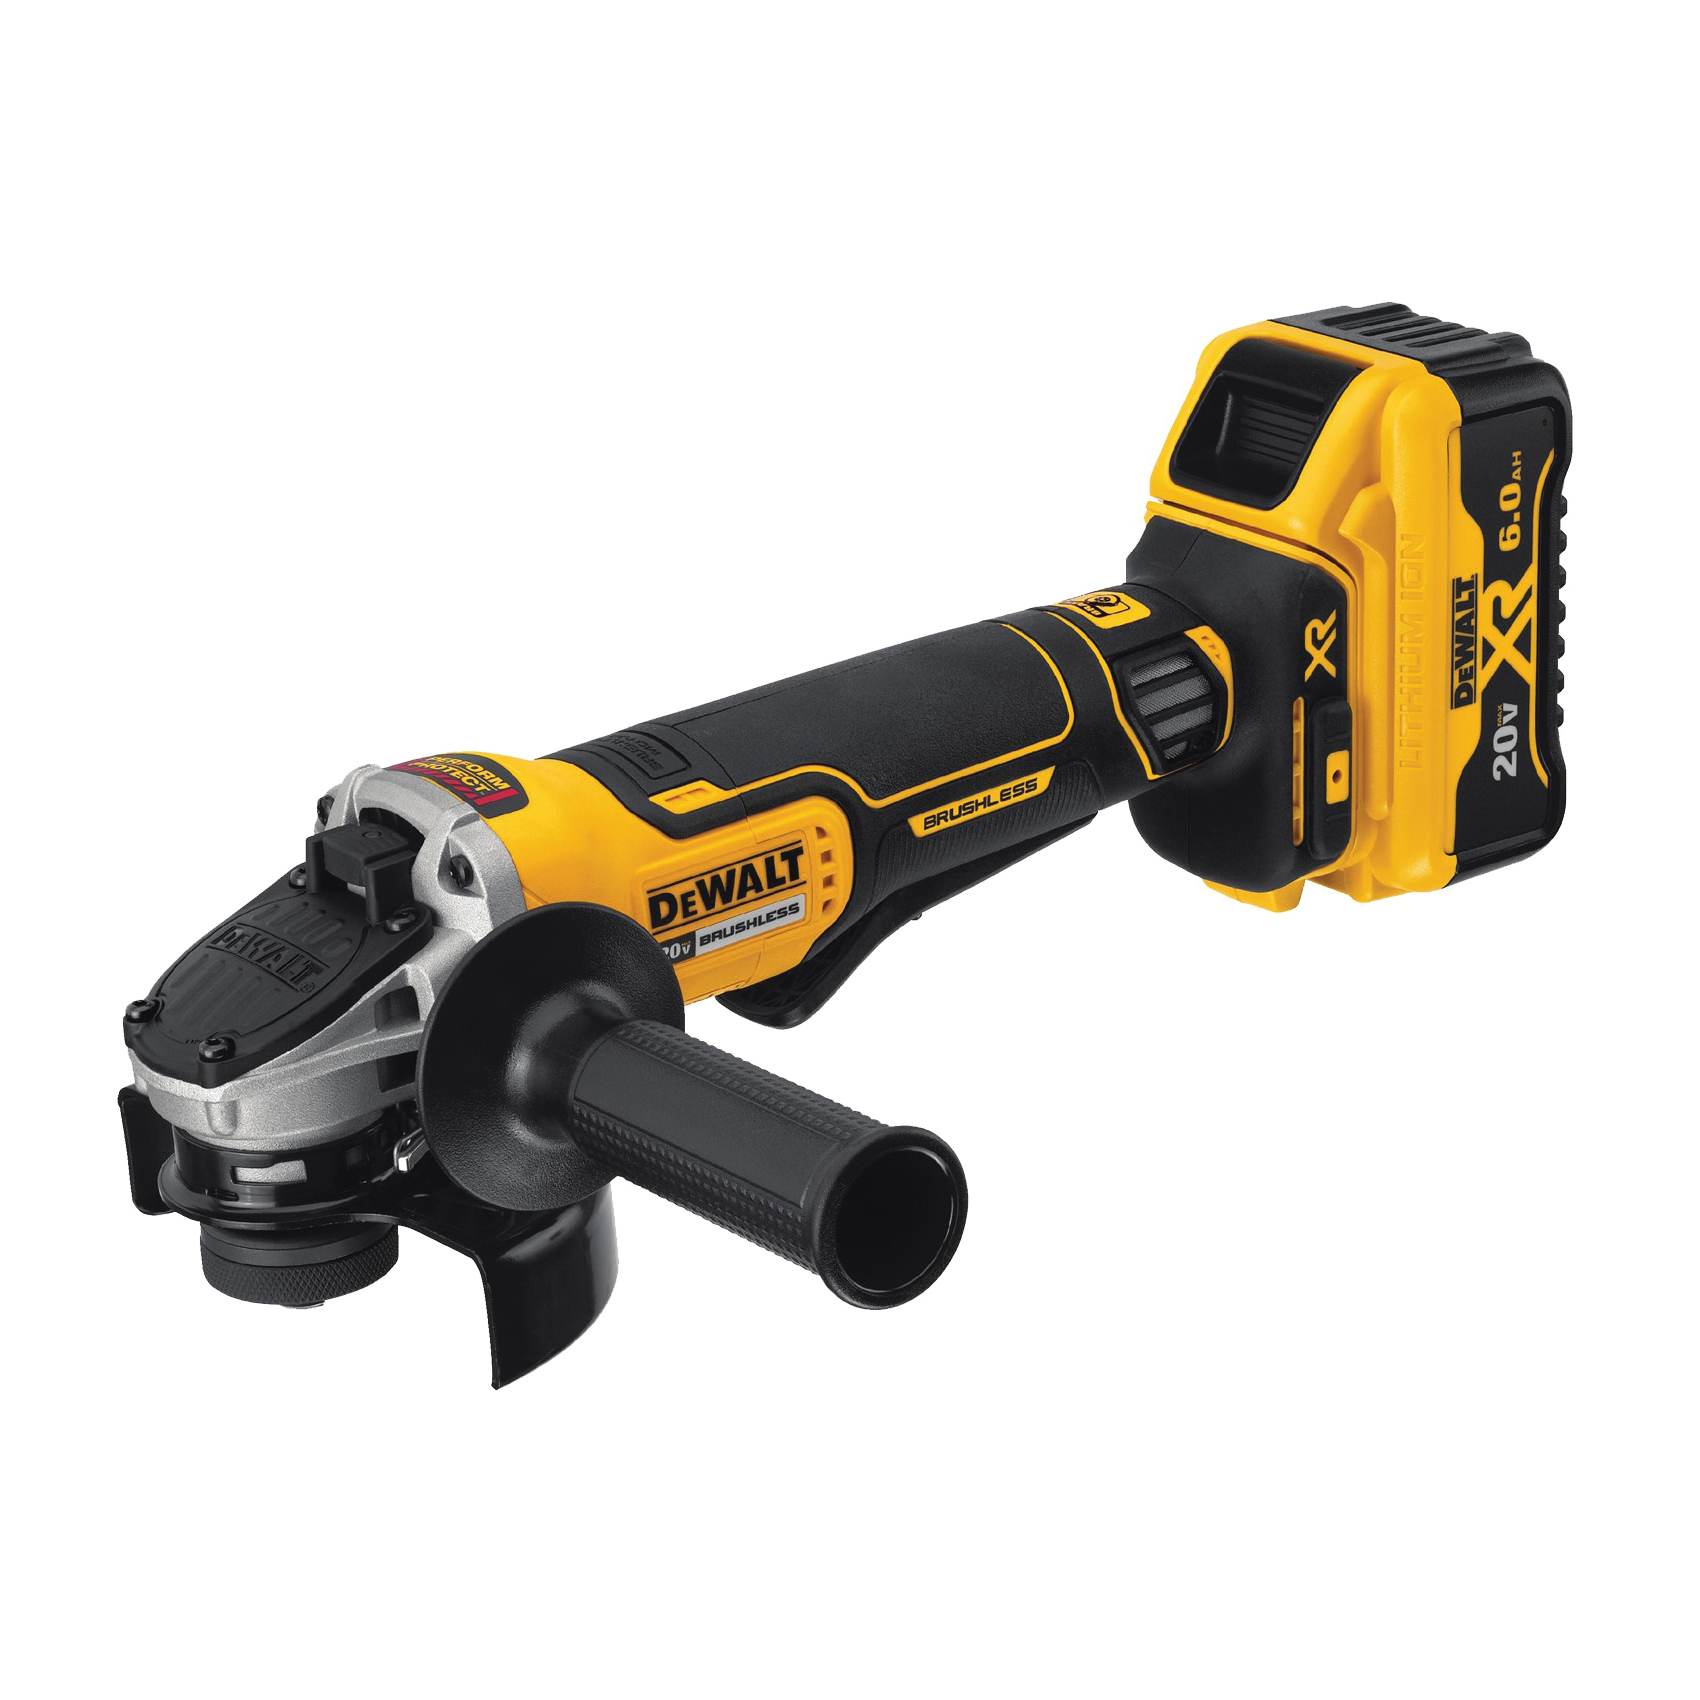 Picture of DeWALT DCG413R2 Angle Grinder Kit, Kit, 20 V Battery, 6 Ah, 5/8 in Spindle, 4-1/2 in Dia Wheel, 9000 rpm Speed